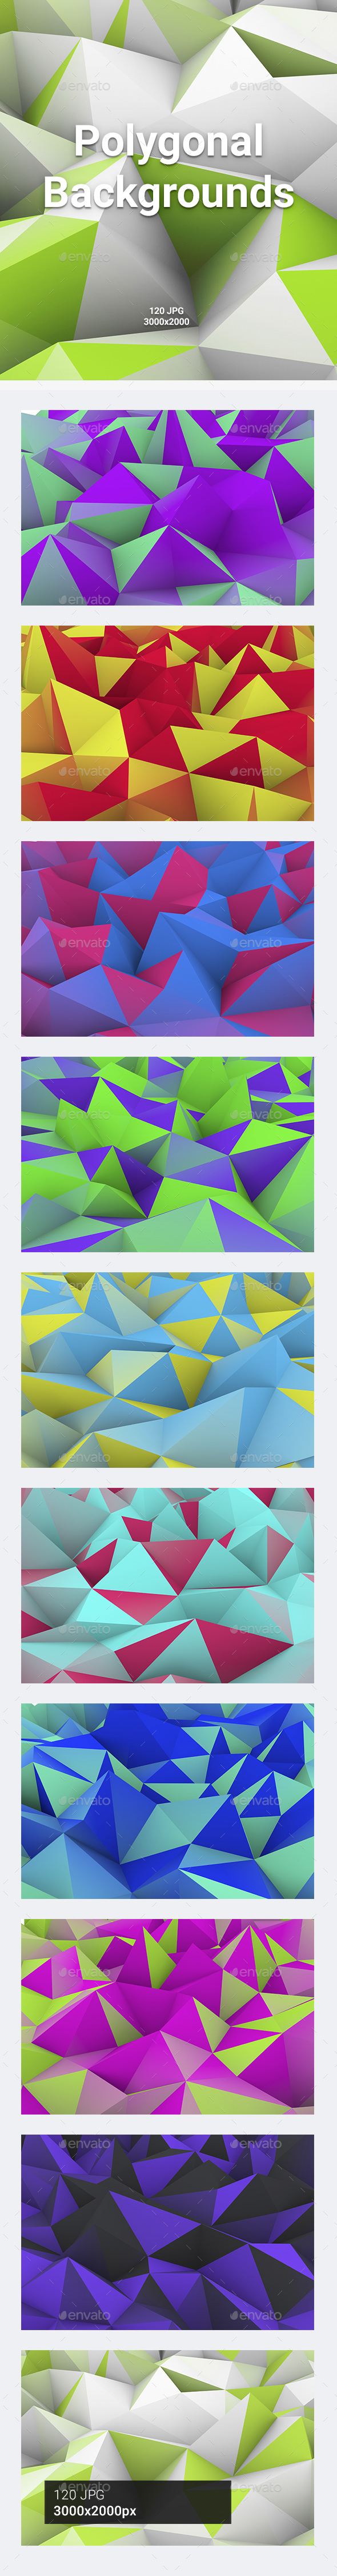 GraphicRiver 120 Polygonal Backgrounds 20963342